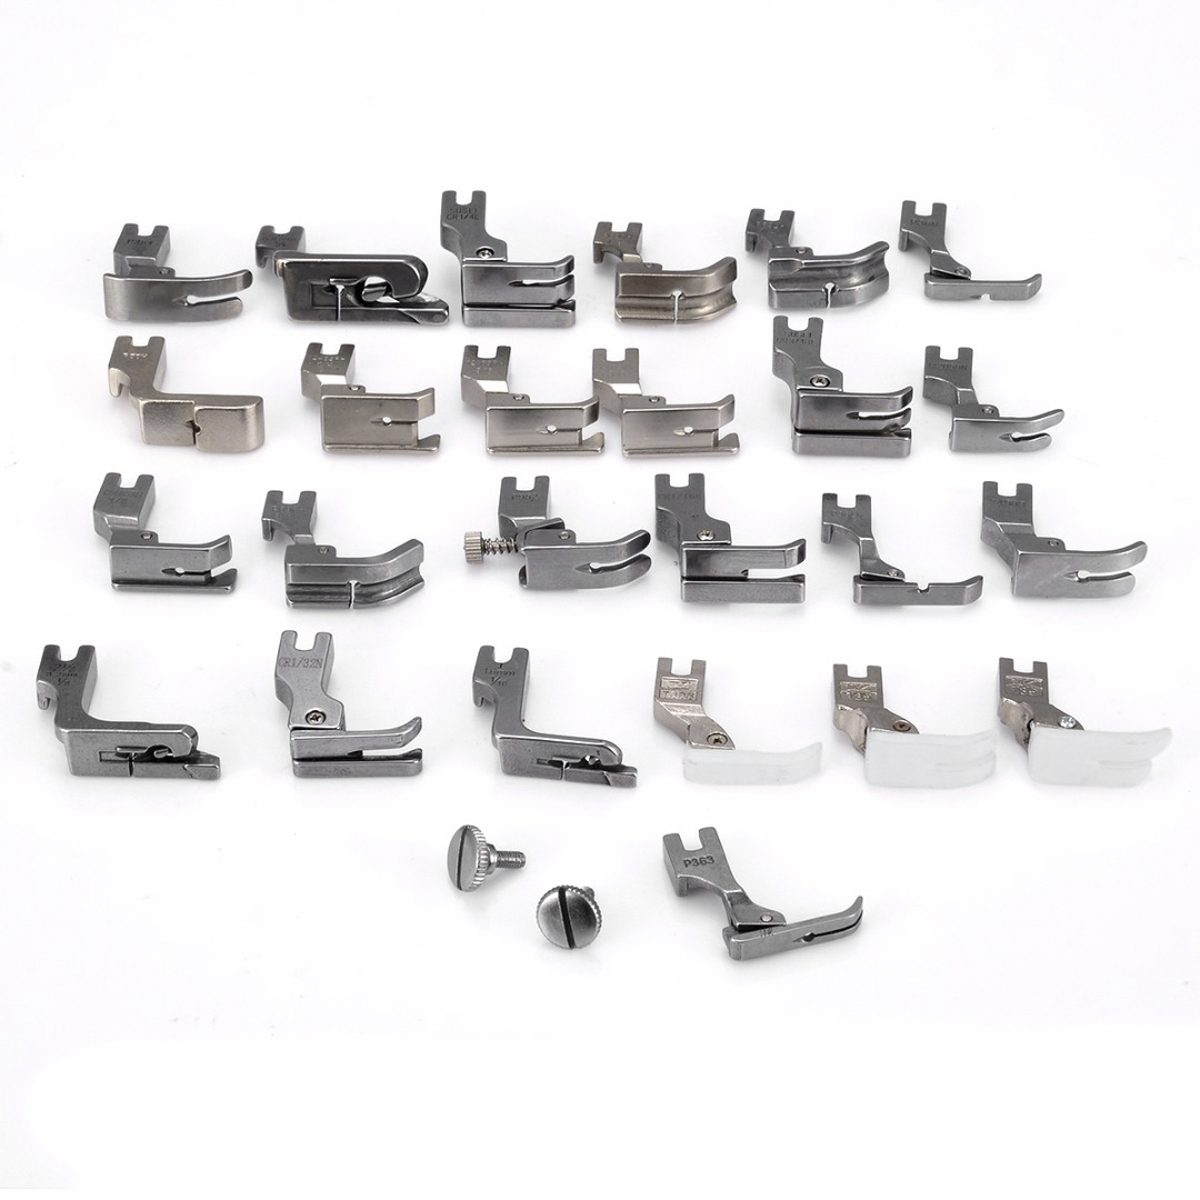 25Pcs Sewing Machine Presser Foot Set For JUKI DDL-5550 8500 8700 Industrial Sewing Machine Sewing Accessories Presser Foot